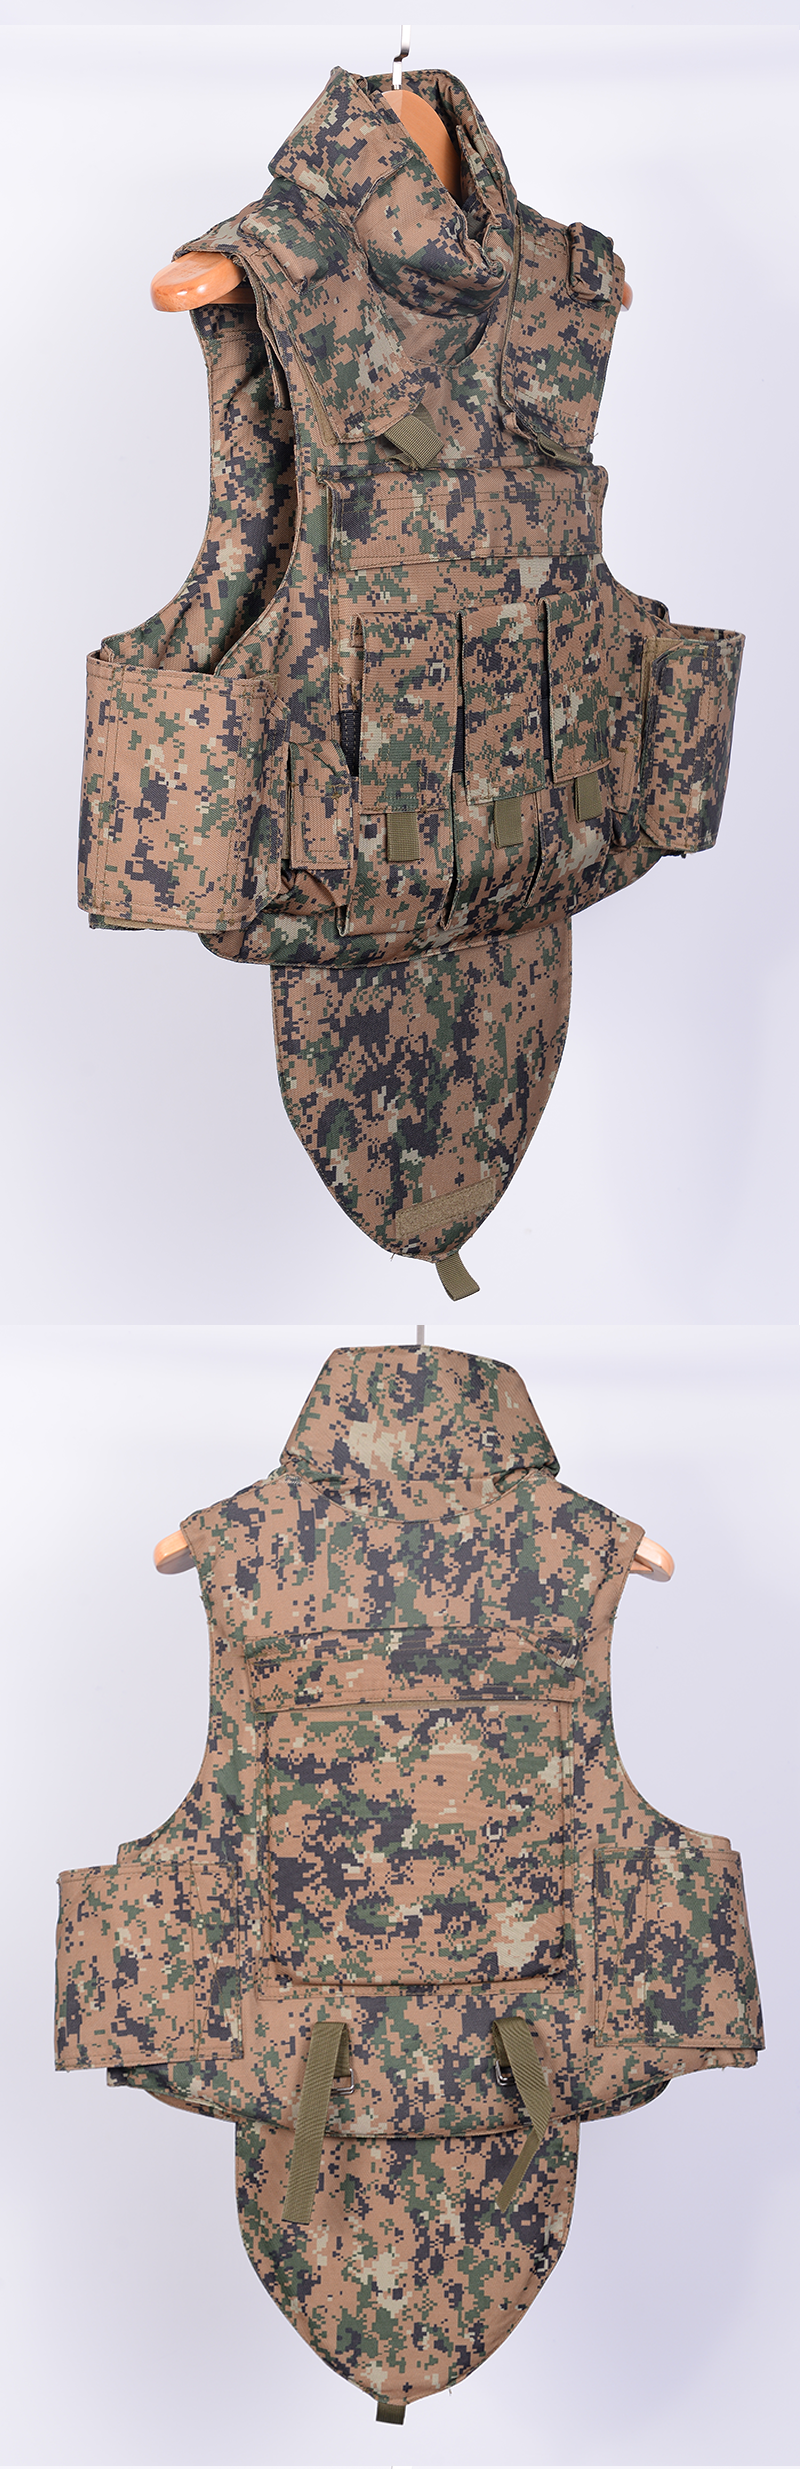 Wholesale Body Army Plate Carrier combat protective camo military bulletproof vest level 4 army green bullet proof vest